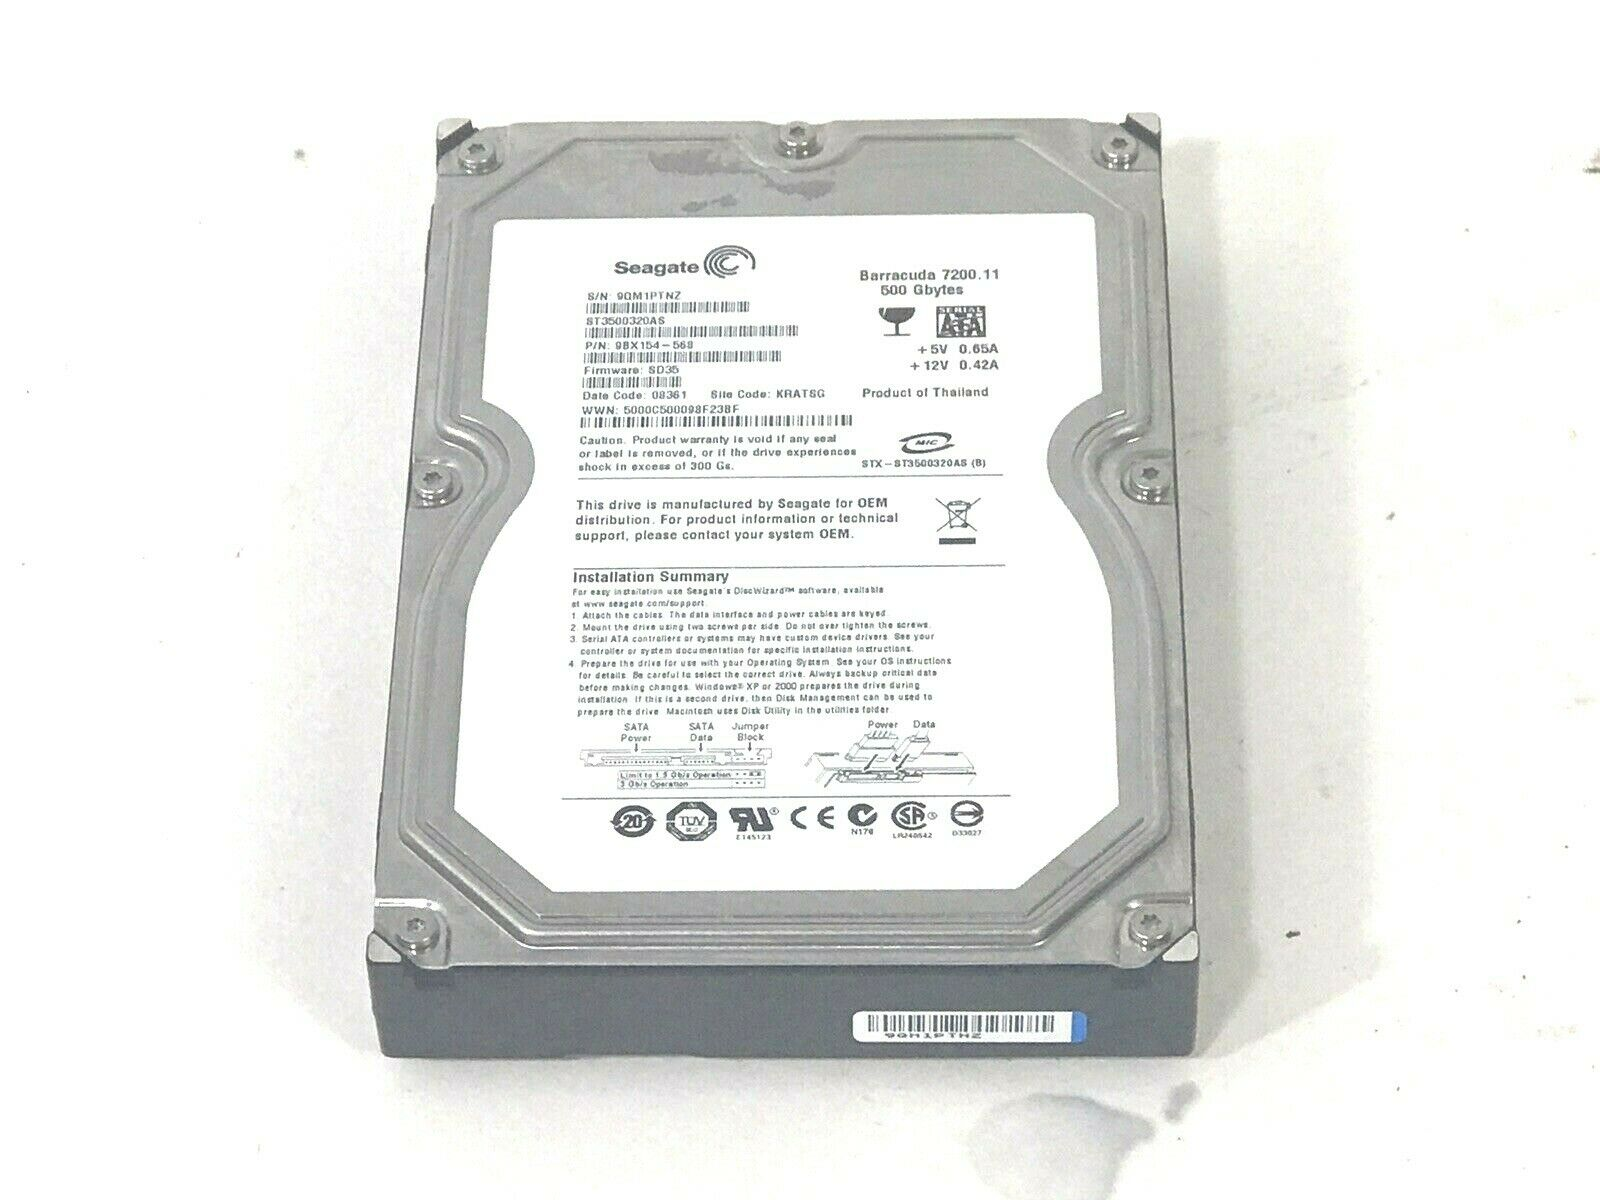 NEW 500GB 7200rpm 2.5 Laptop Hard Drive for Toshiba Satellite A350-ST3601 A505-S6969 A505-S6982 A660-BT2G25 C645D-SP4018M C655D-S5236 L305-SP5806R L505-SP6011L L655-S5106 L655D-S5076WH L775-S7245 M200-ST2002 M640-BT2N23 P305-S8844 P305D-S8845